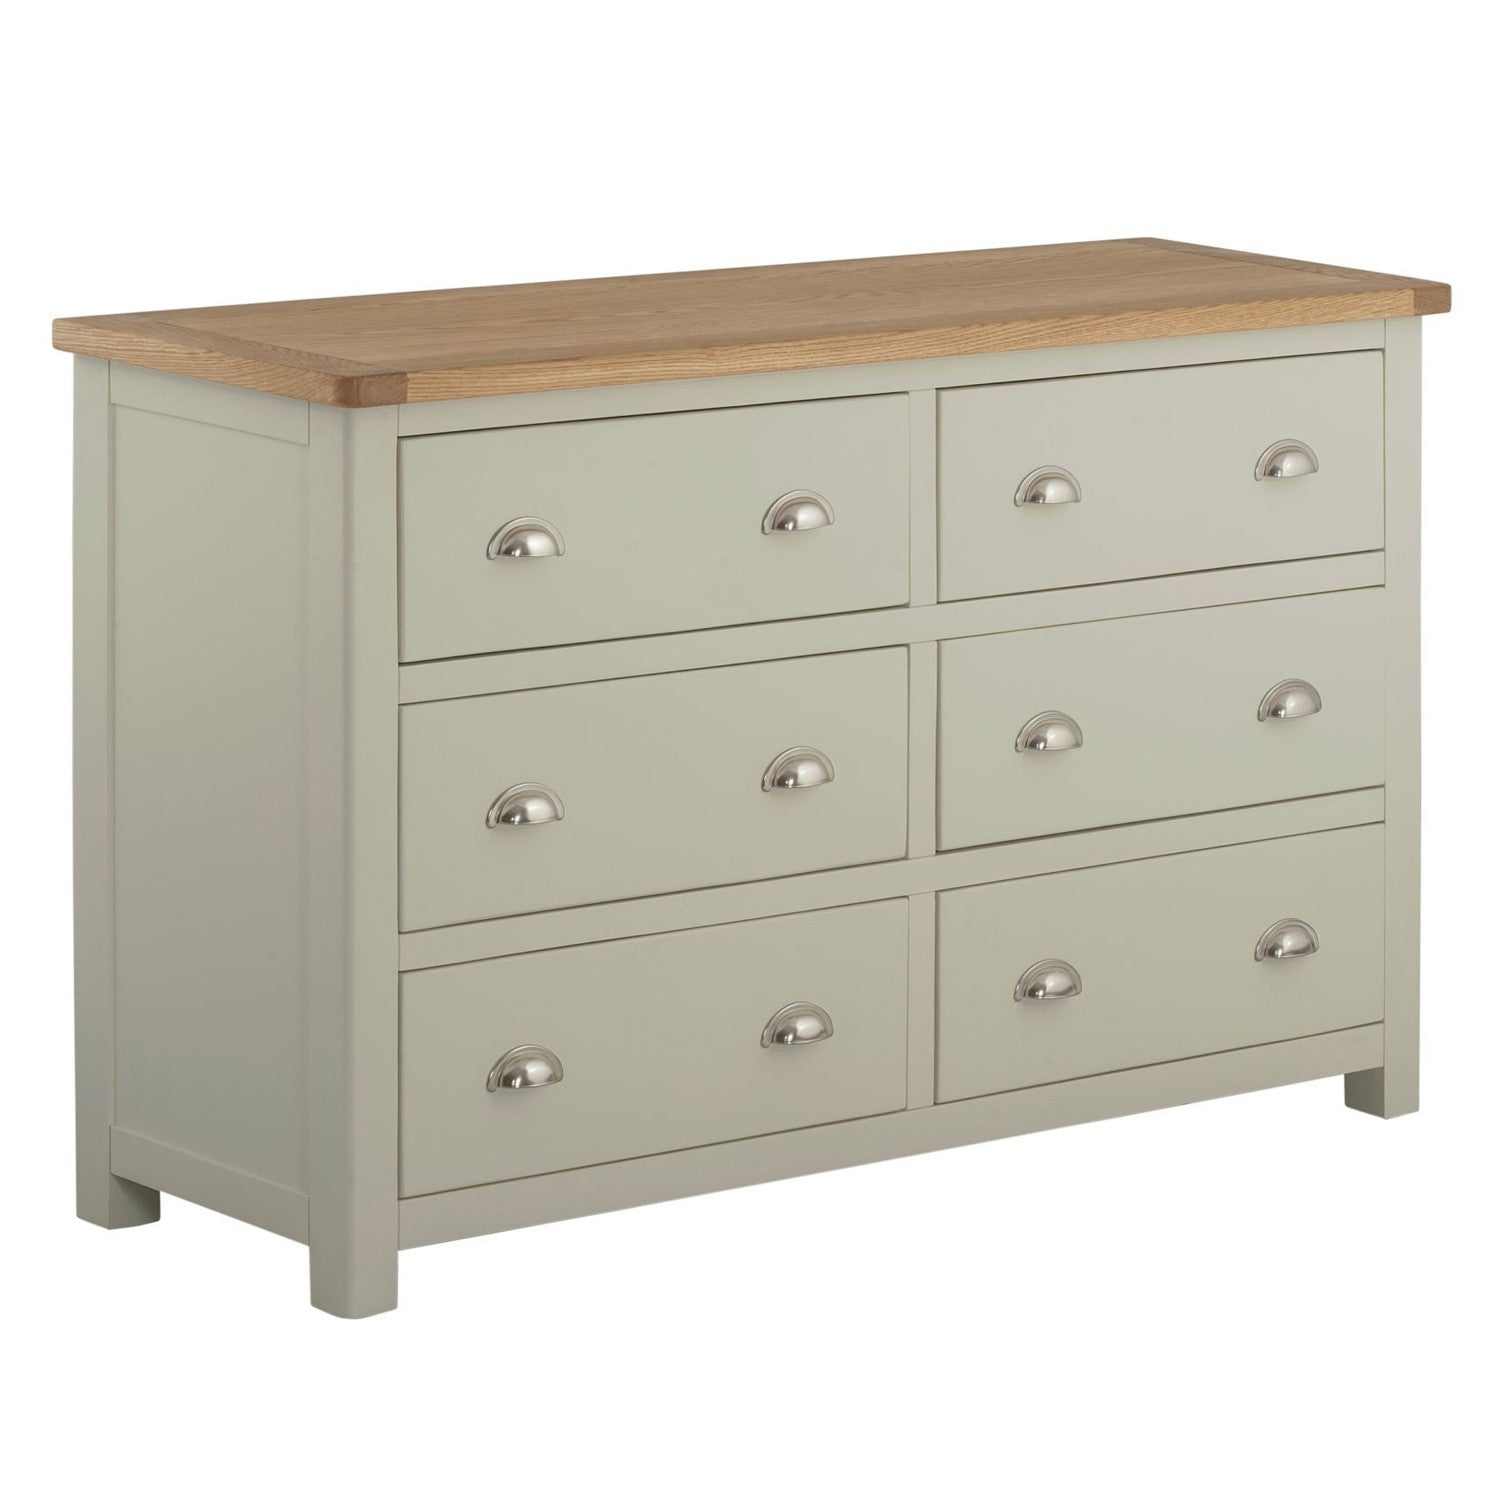 Todenham Oak & Painted Chest of Drawers - 6 Drawer Wide Chest - Better Furniture Norwich & Great Yarmouth